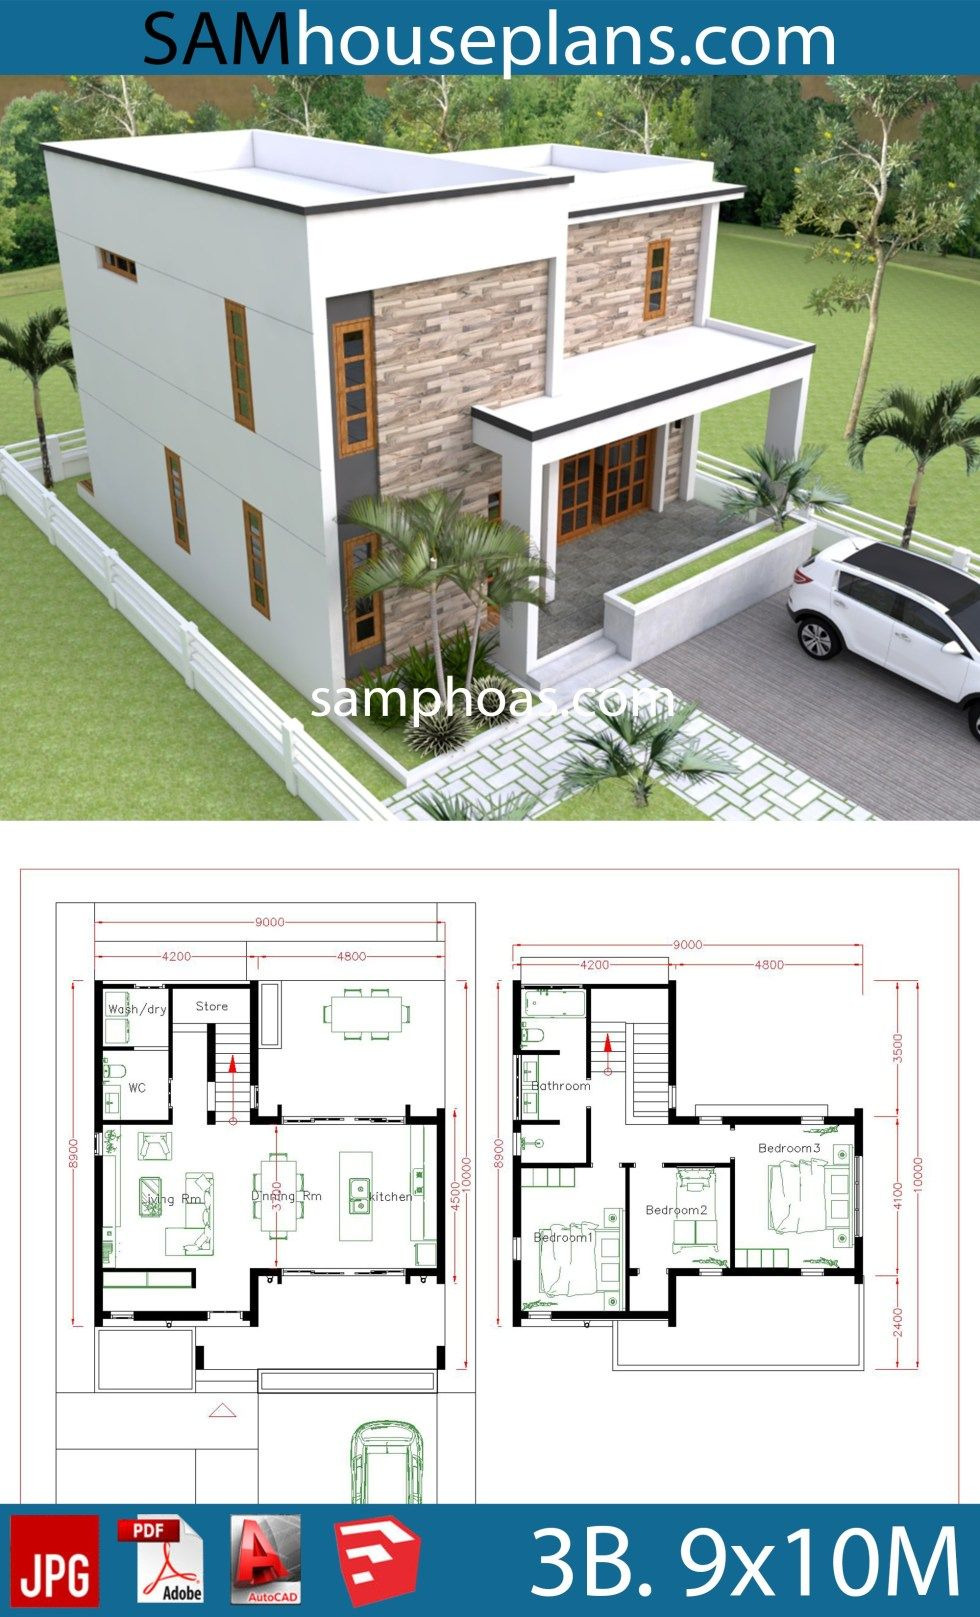 House Plans for Duplexes Three Bedroom Unique House Plans 9x10m with 5beds In 2020